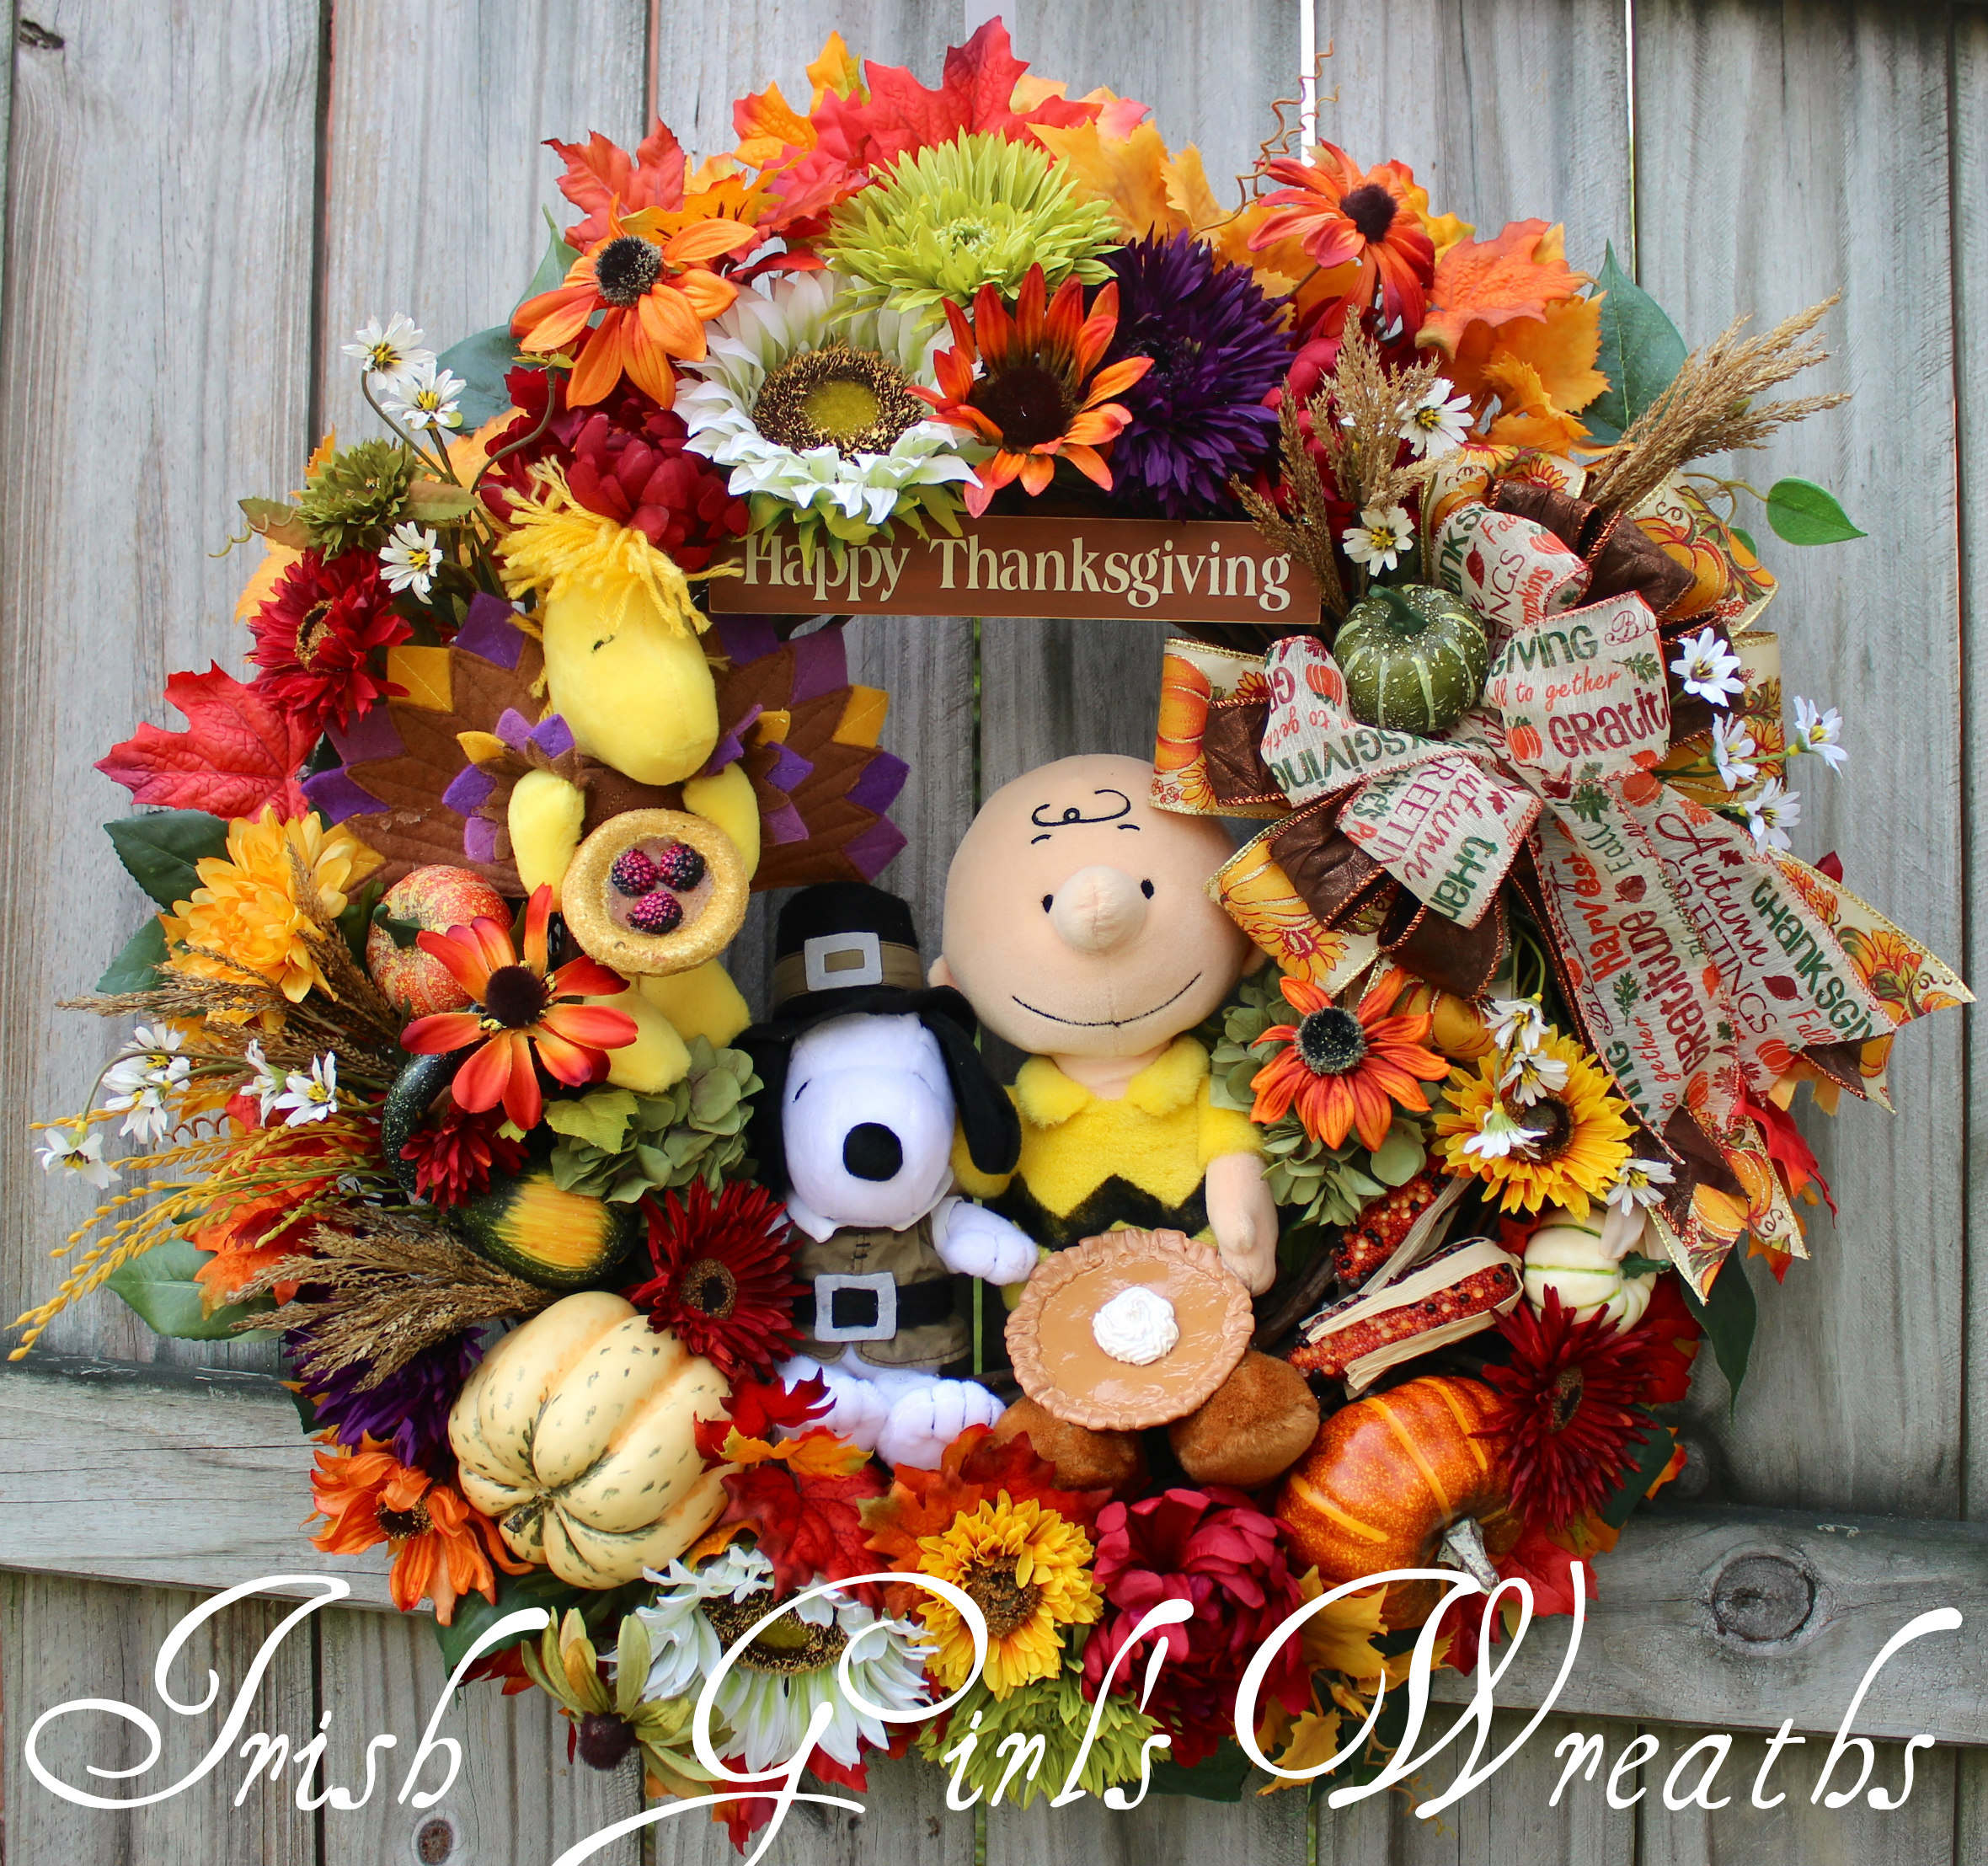 Charlie Brown Thanksgiving Wreath, for Alison